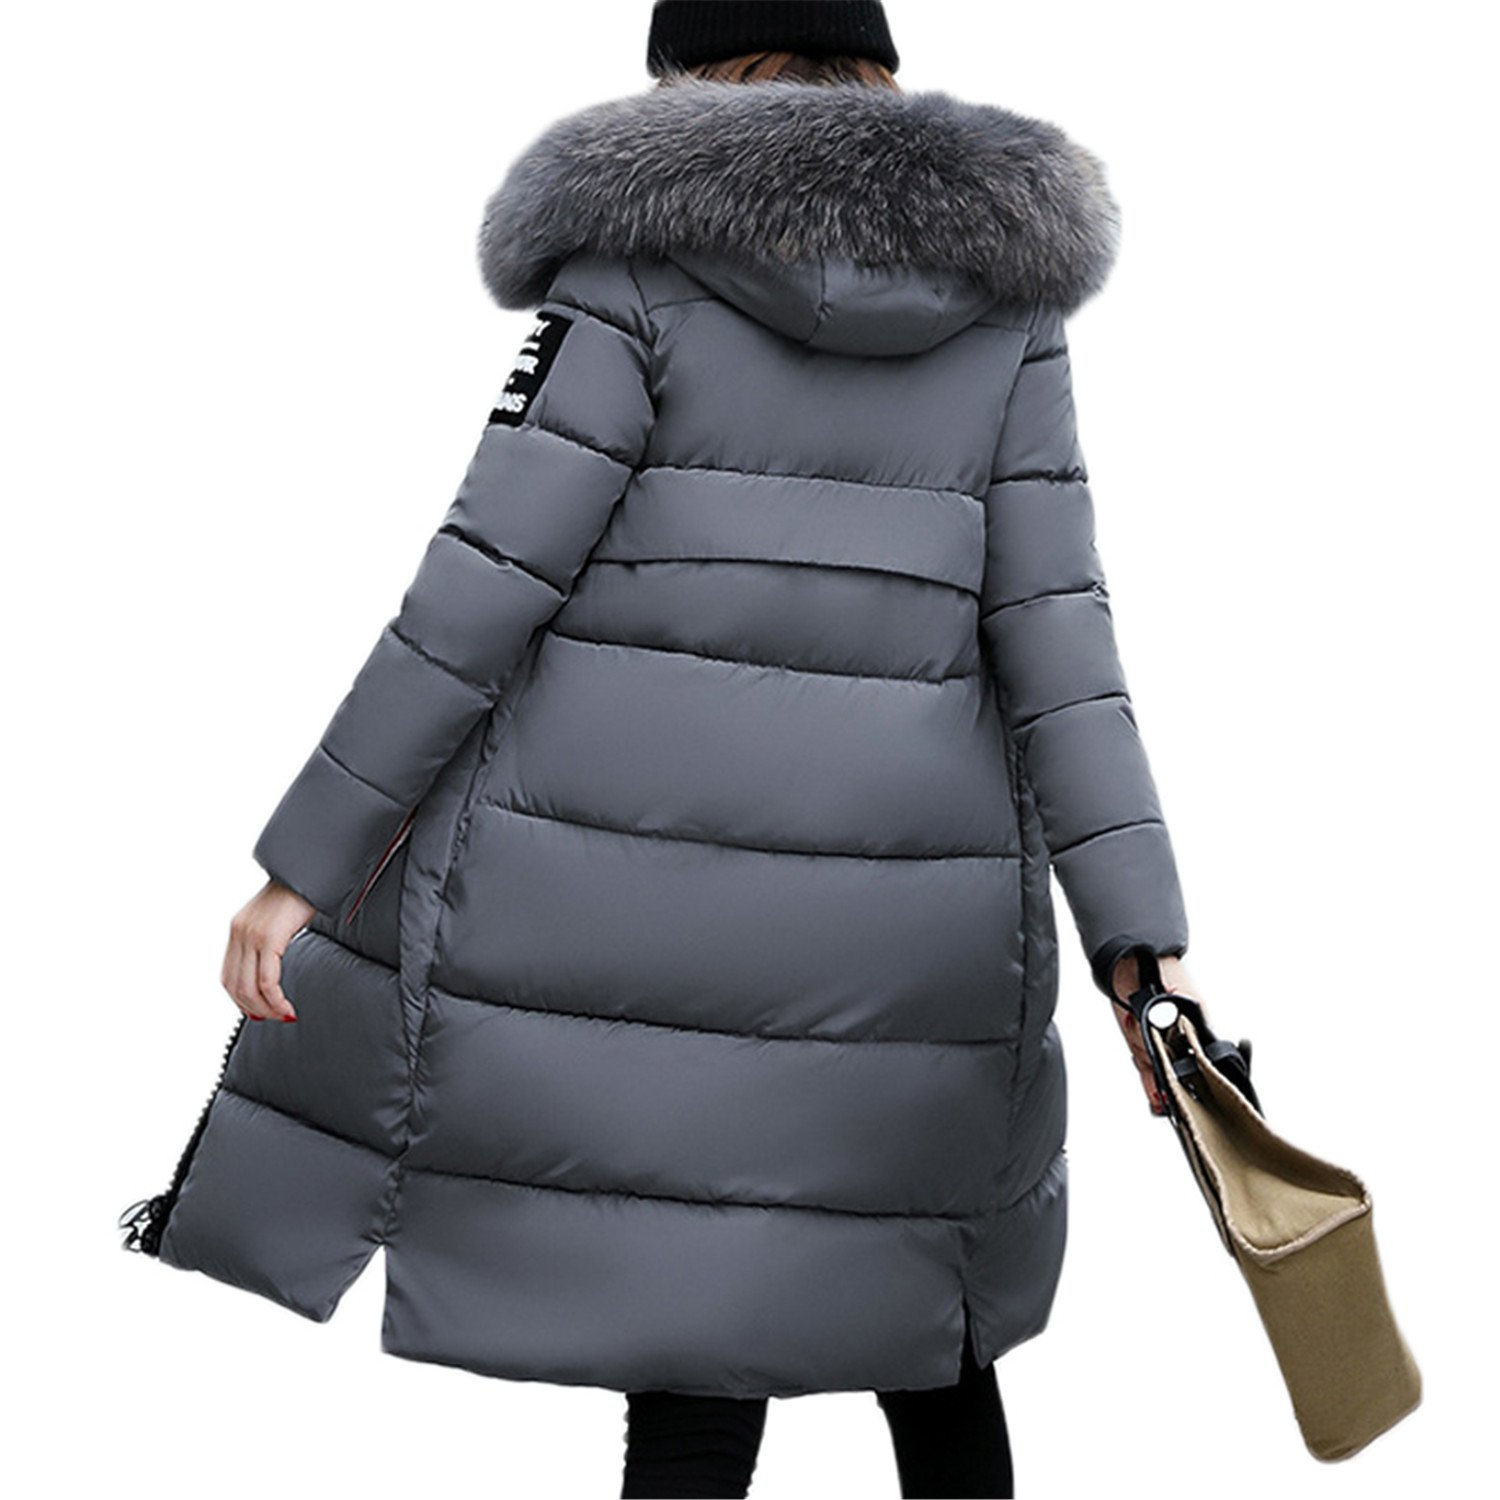 Amazon.com: Dapengzhu New Fashion Warm Winter Jacket Women Big Fur Thick Slim Female Jacket Winter Women Hooded Coat Down Parkas Long Outerwear Orange XL: ...